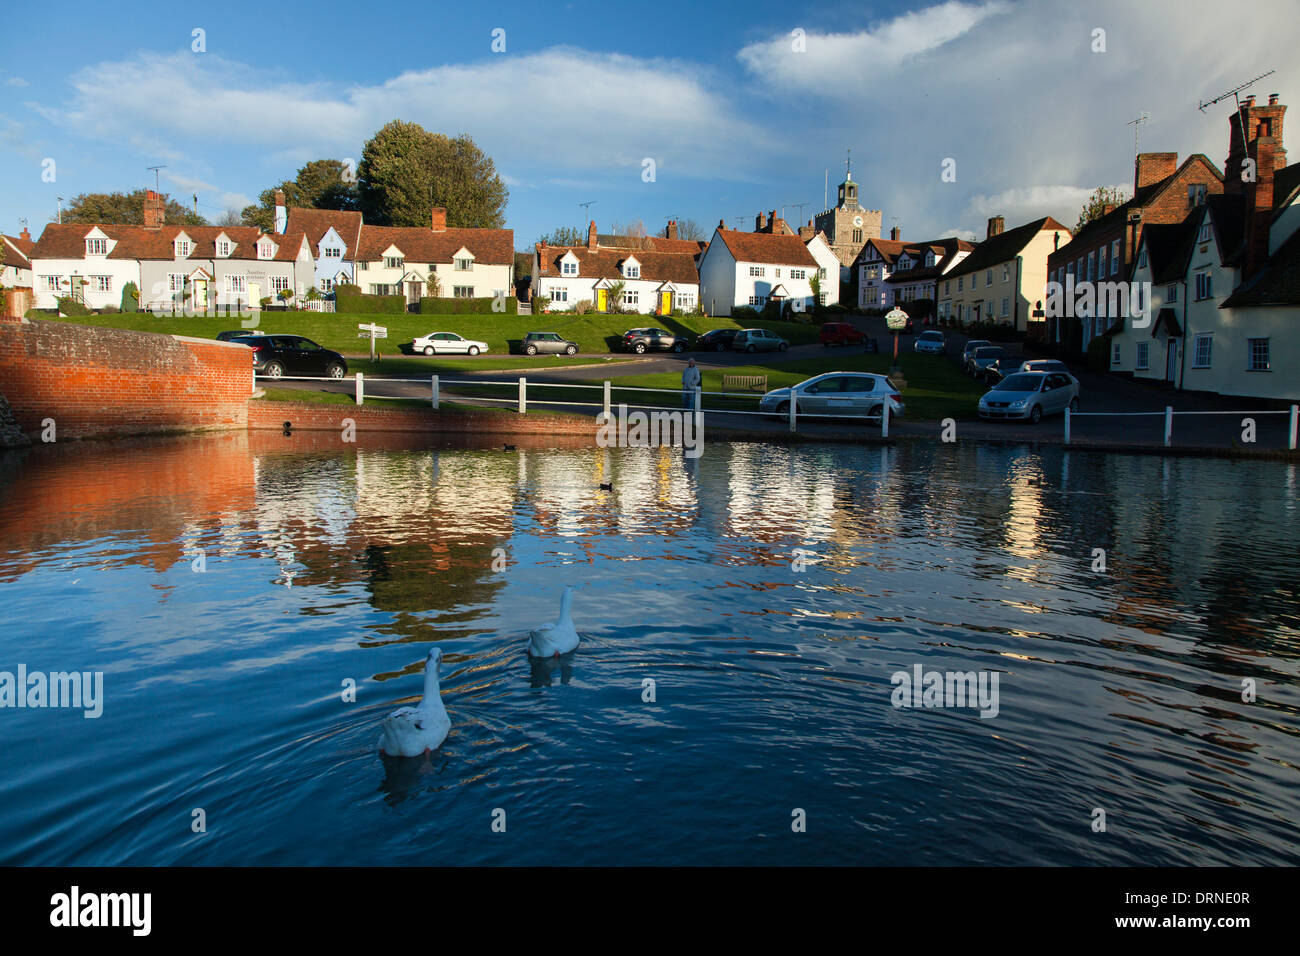 Duck pond and medieval cottages in the village of Finchingfield, Essex, England. - Stock Image